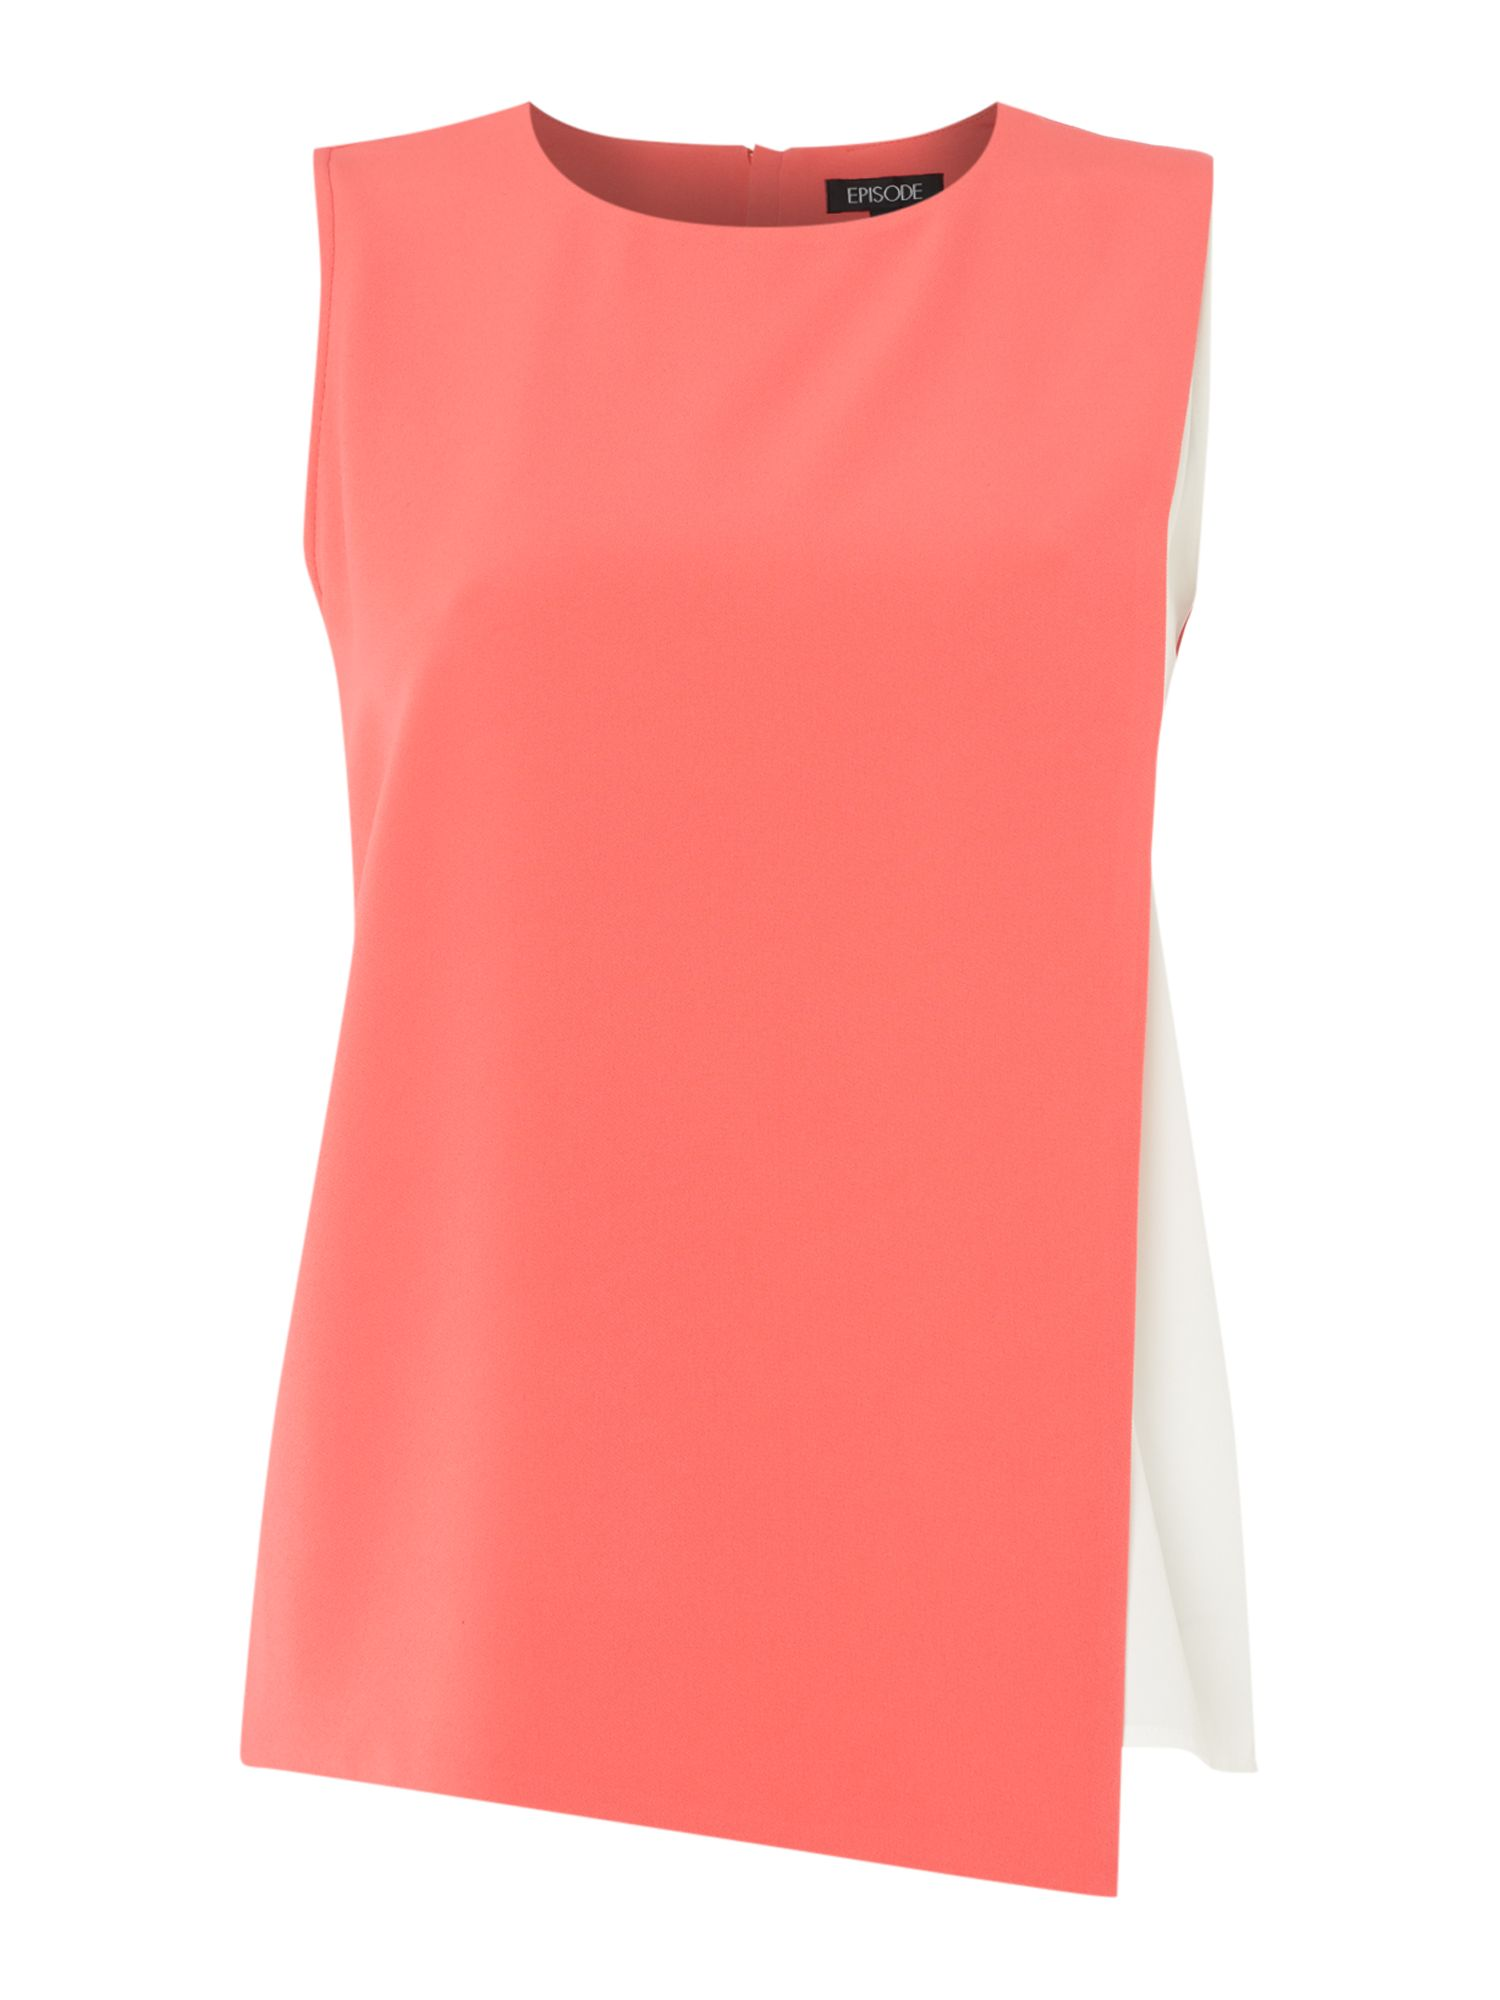 Episode Episode Sleeveless top with panel underlay, Watermelon